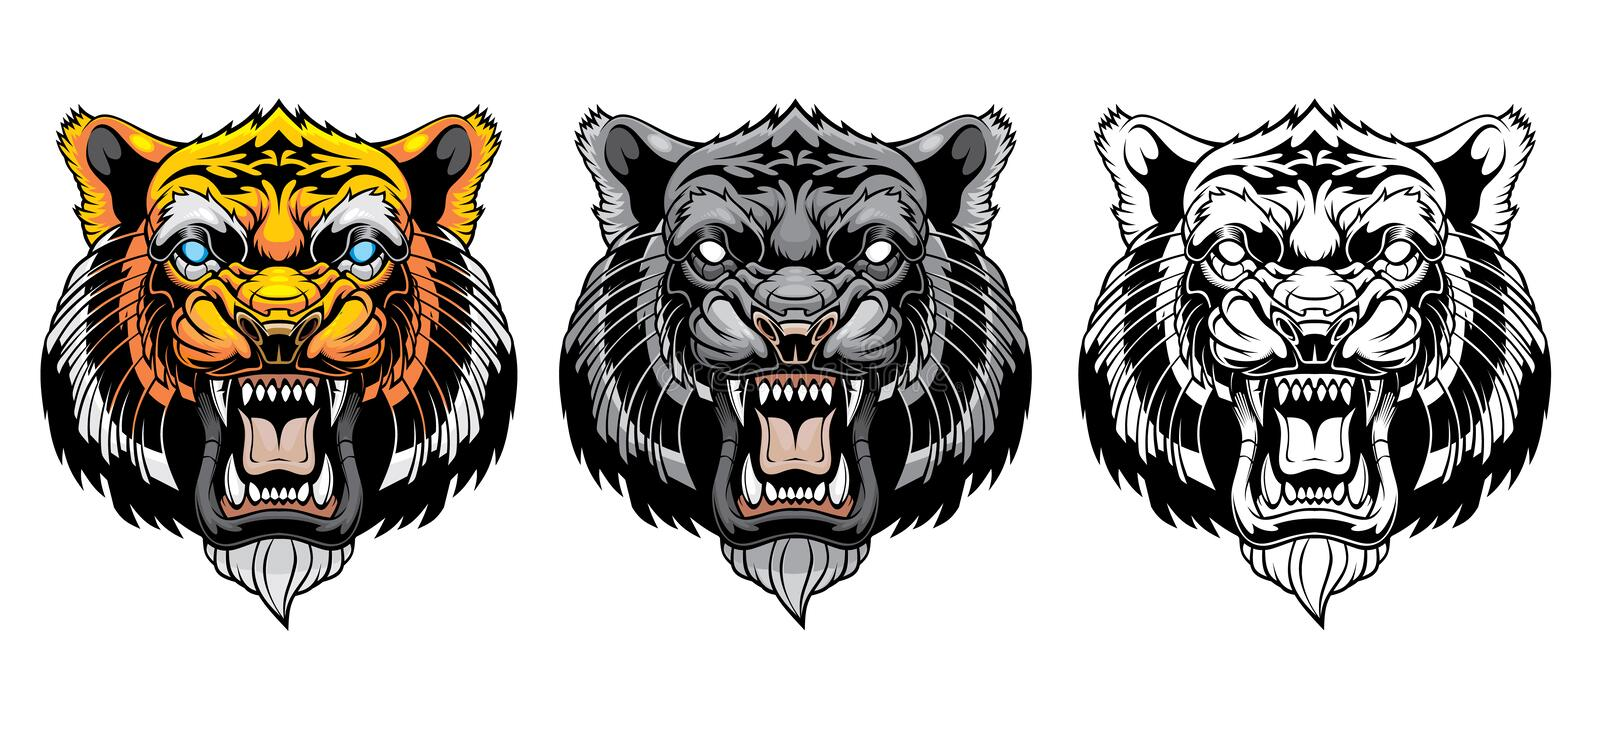 Set of growling tiger heads. royalty free illustration